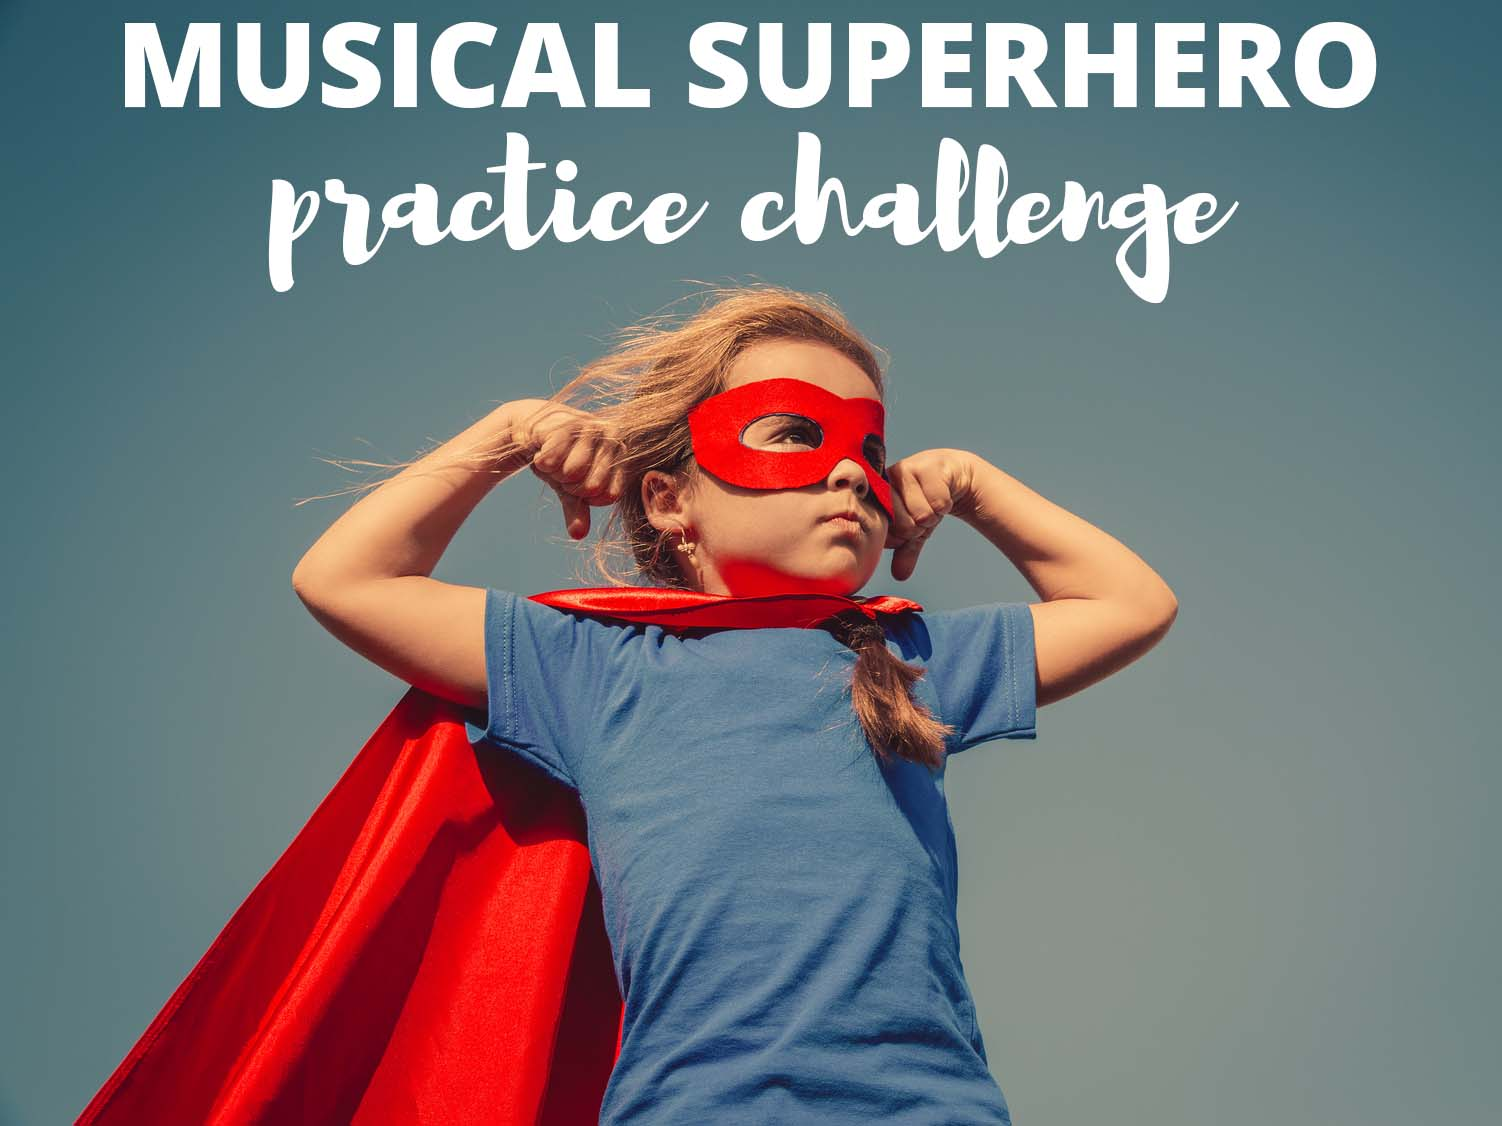 Become A Musical Superhero